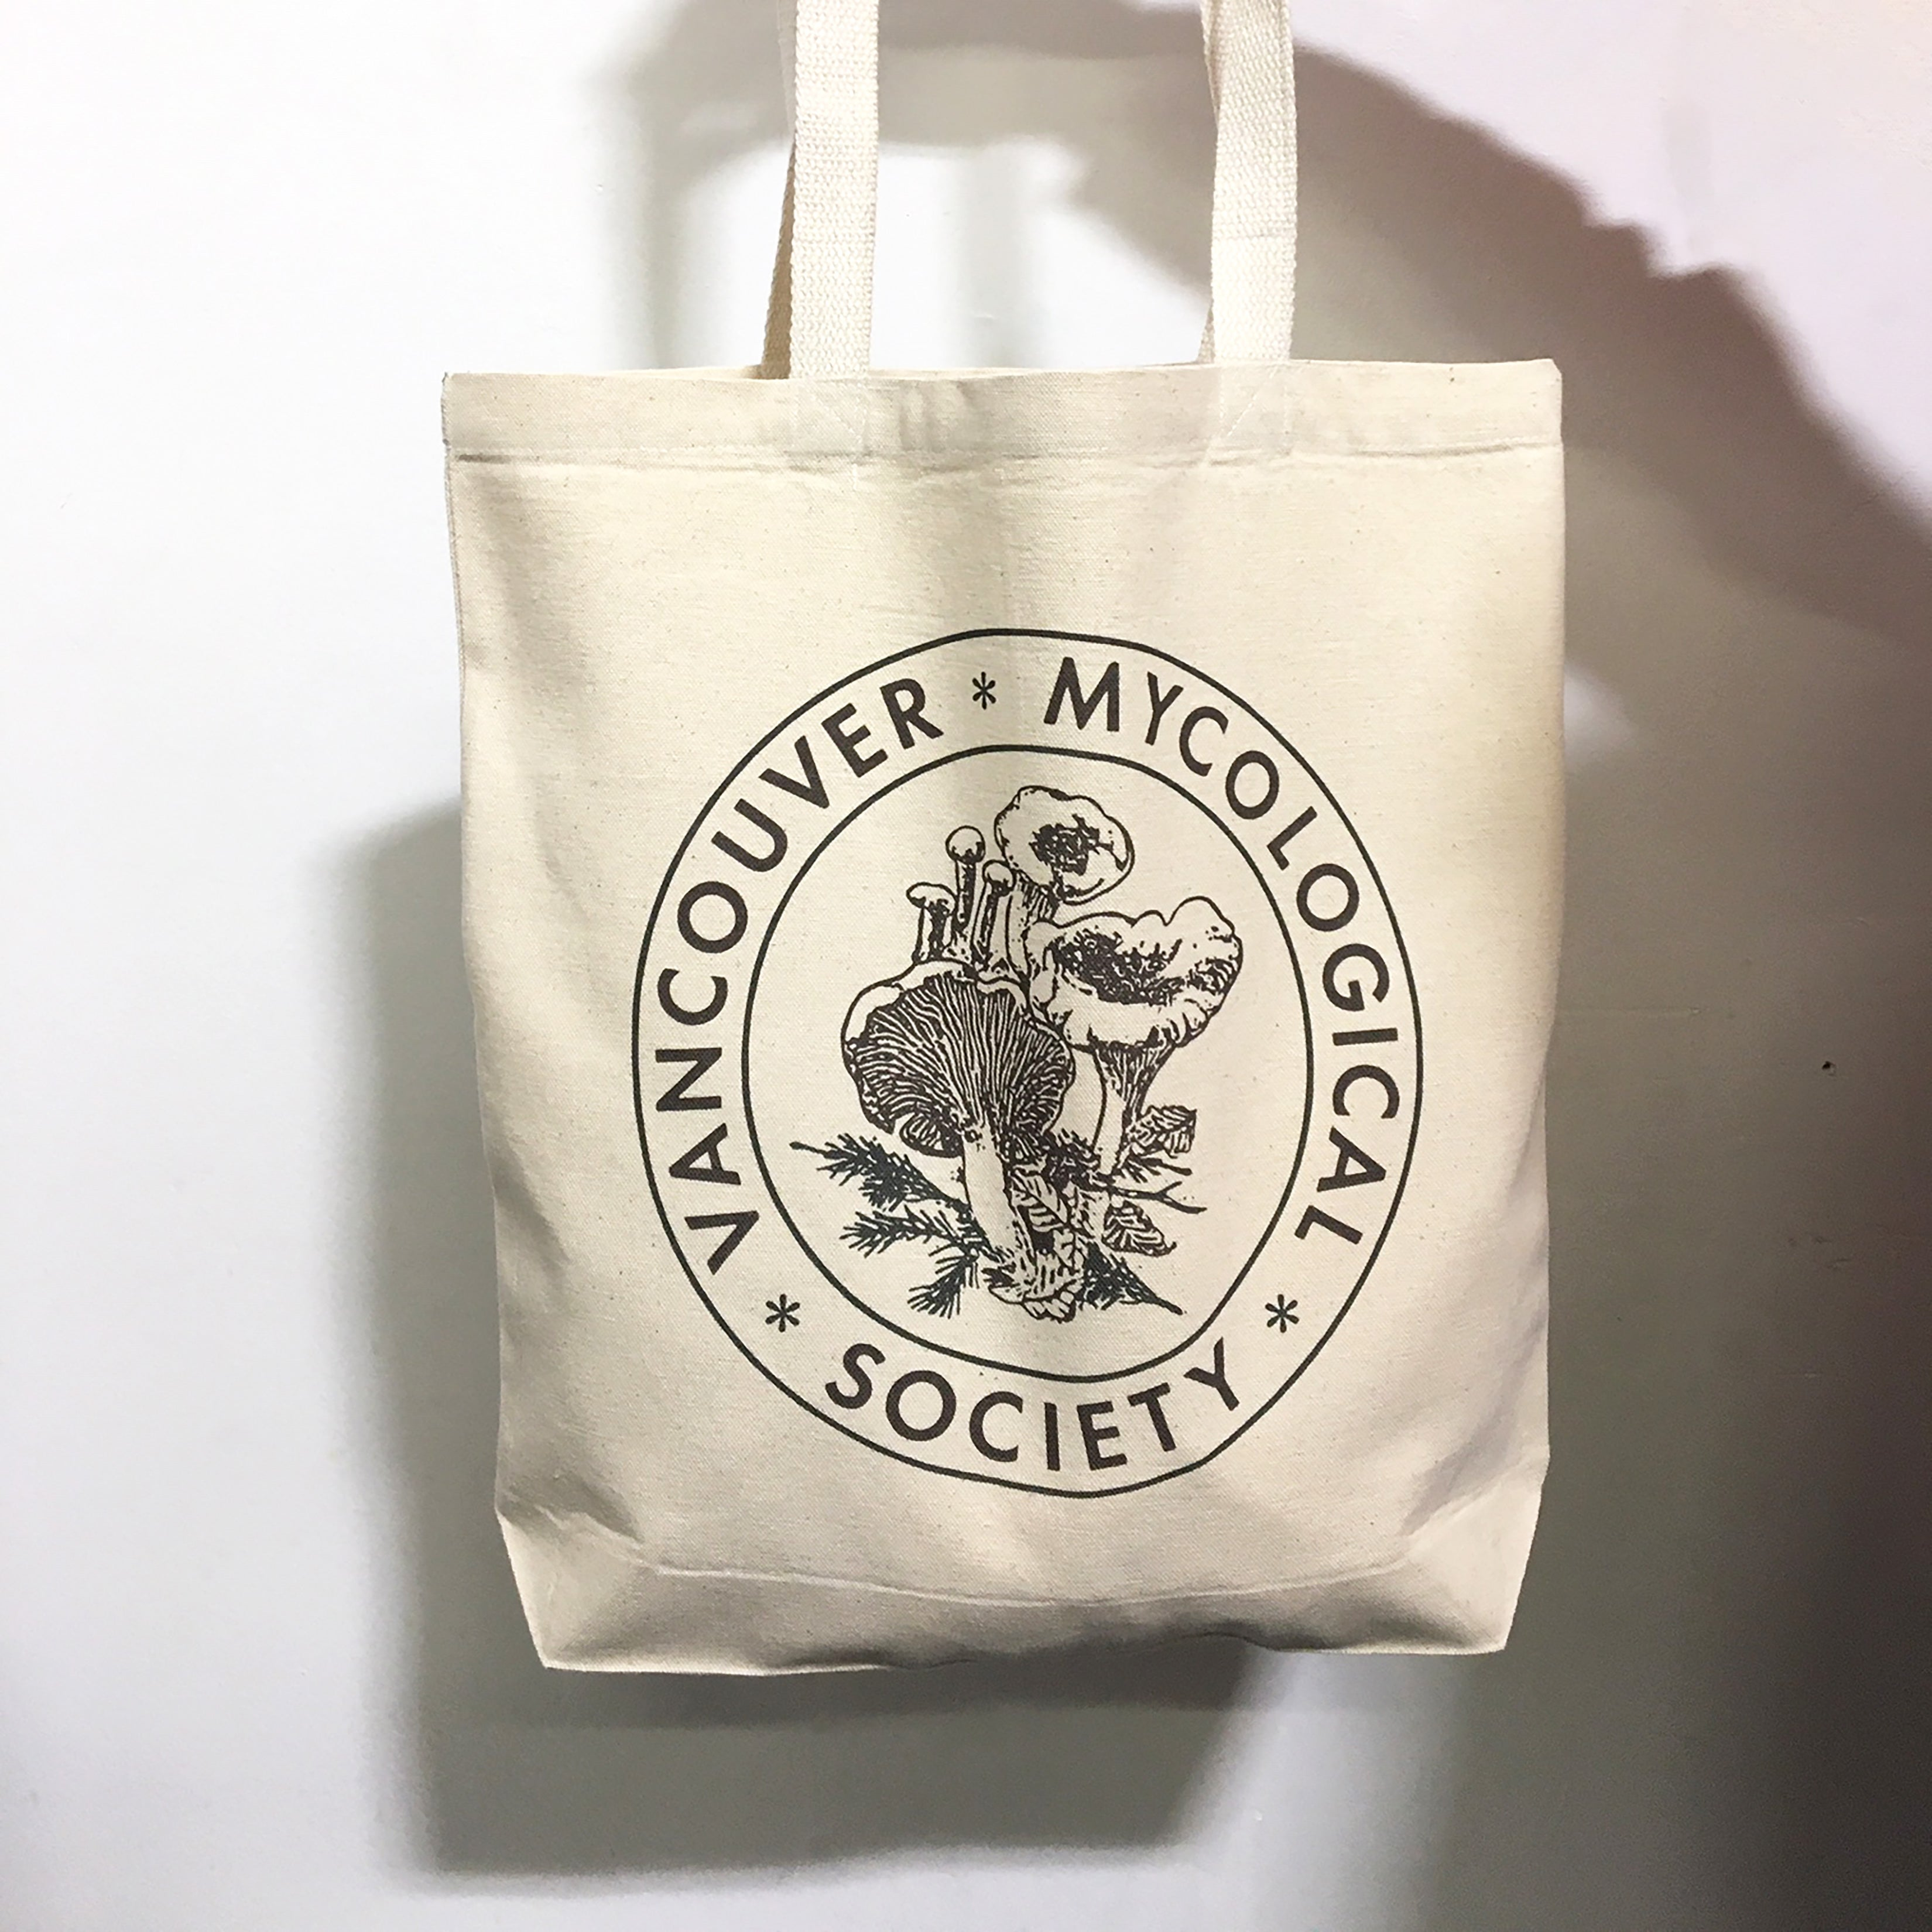 Van Mycological Society Tote Bags